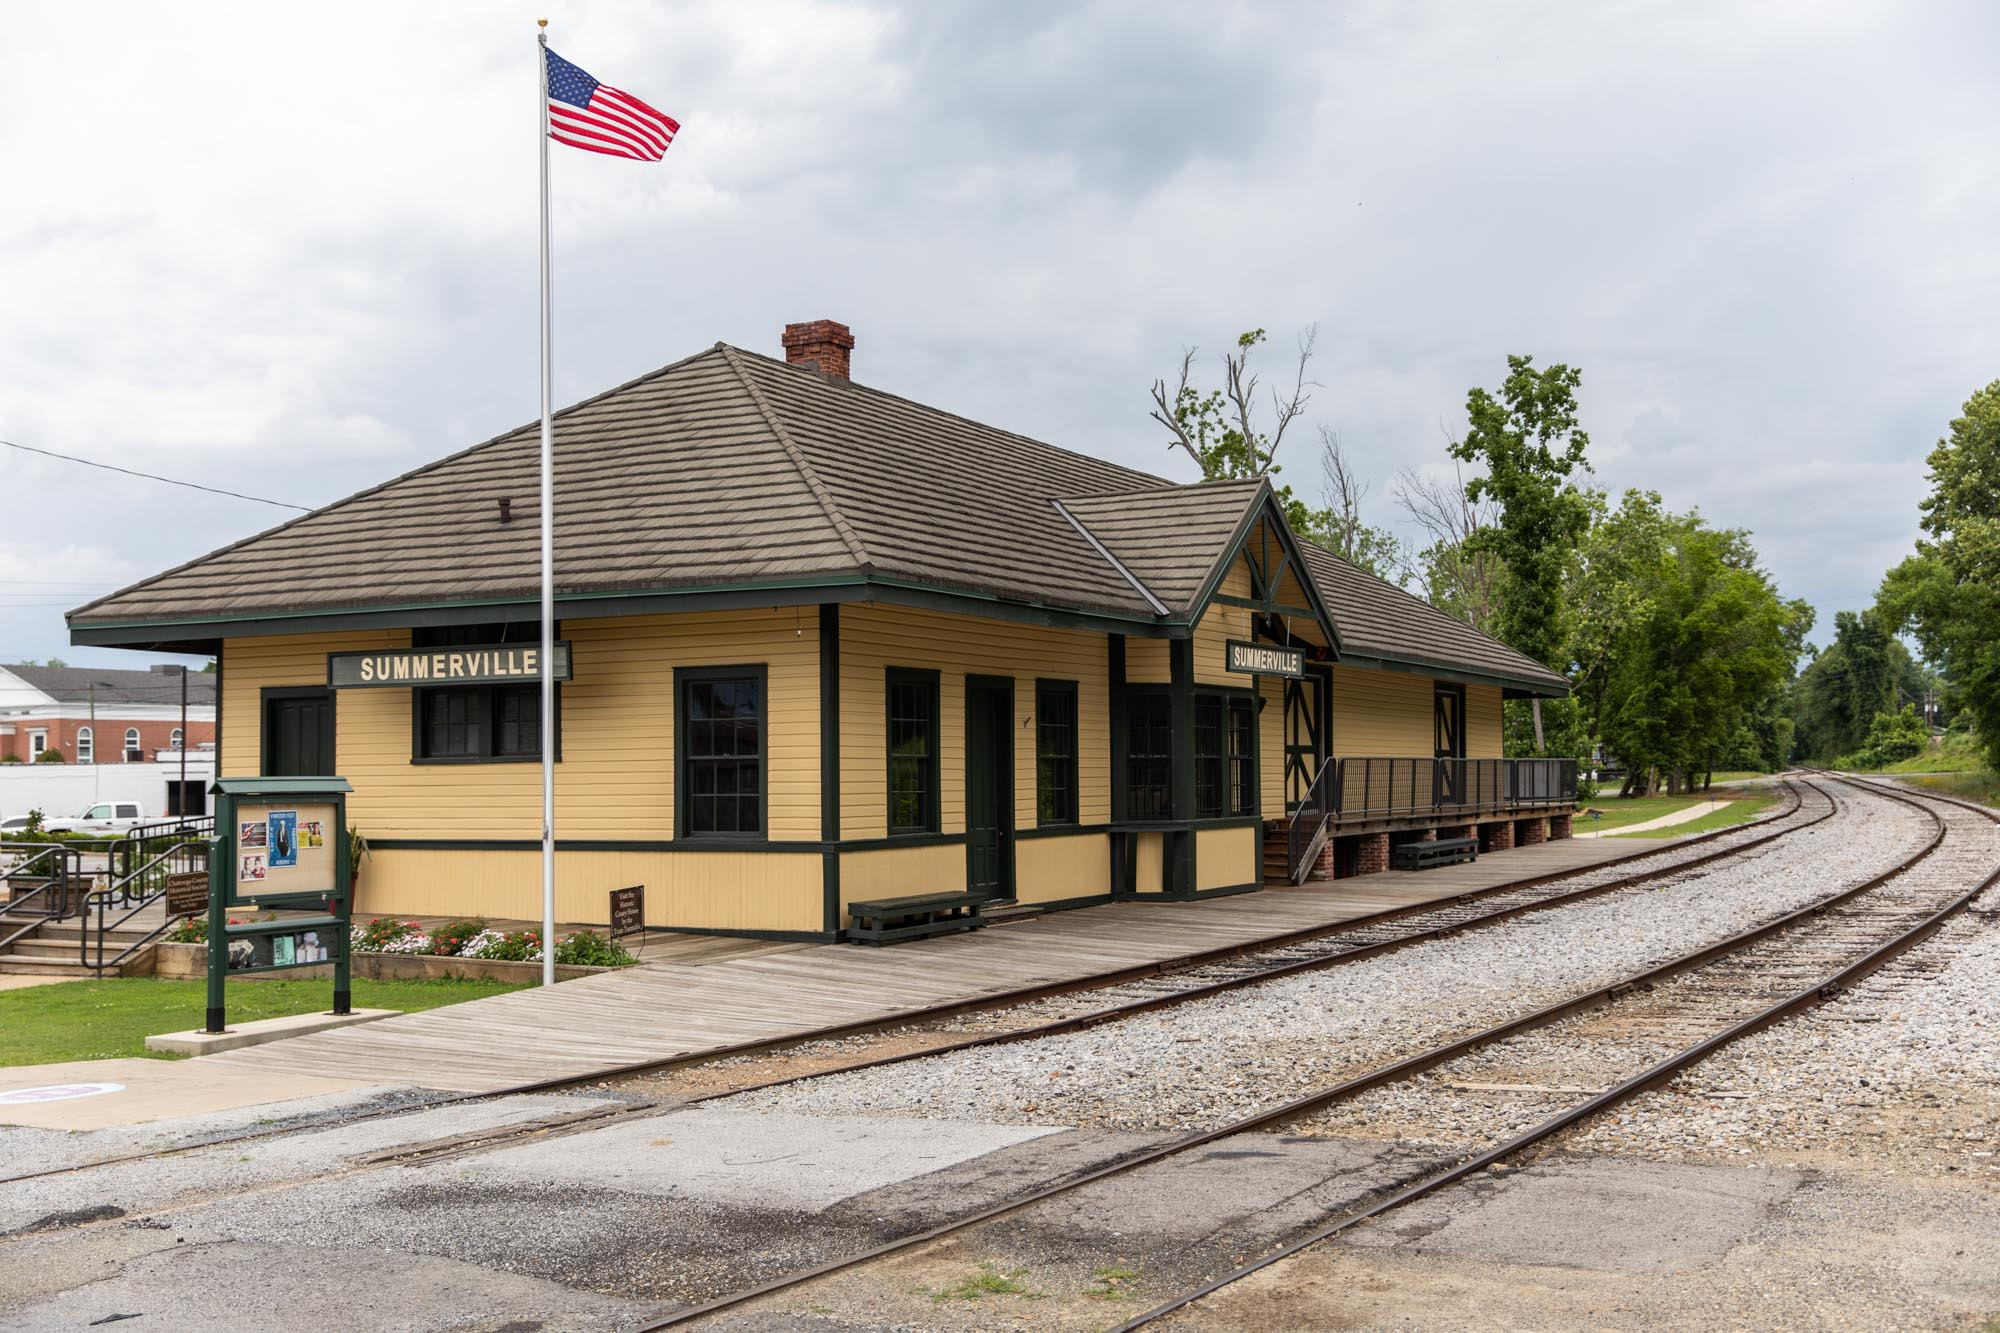 Summerville Depot, one of the stops on the Tennessee Valley Railroad.  Also home to Paradise Garden.